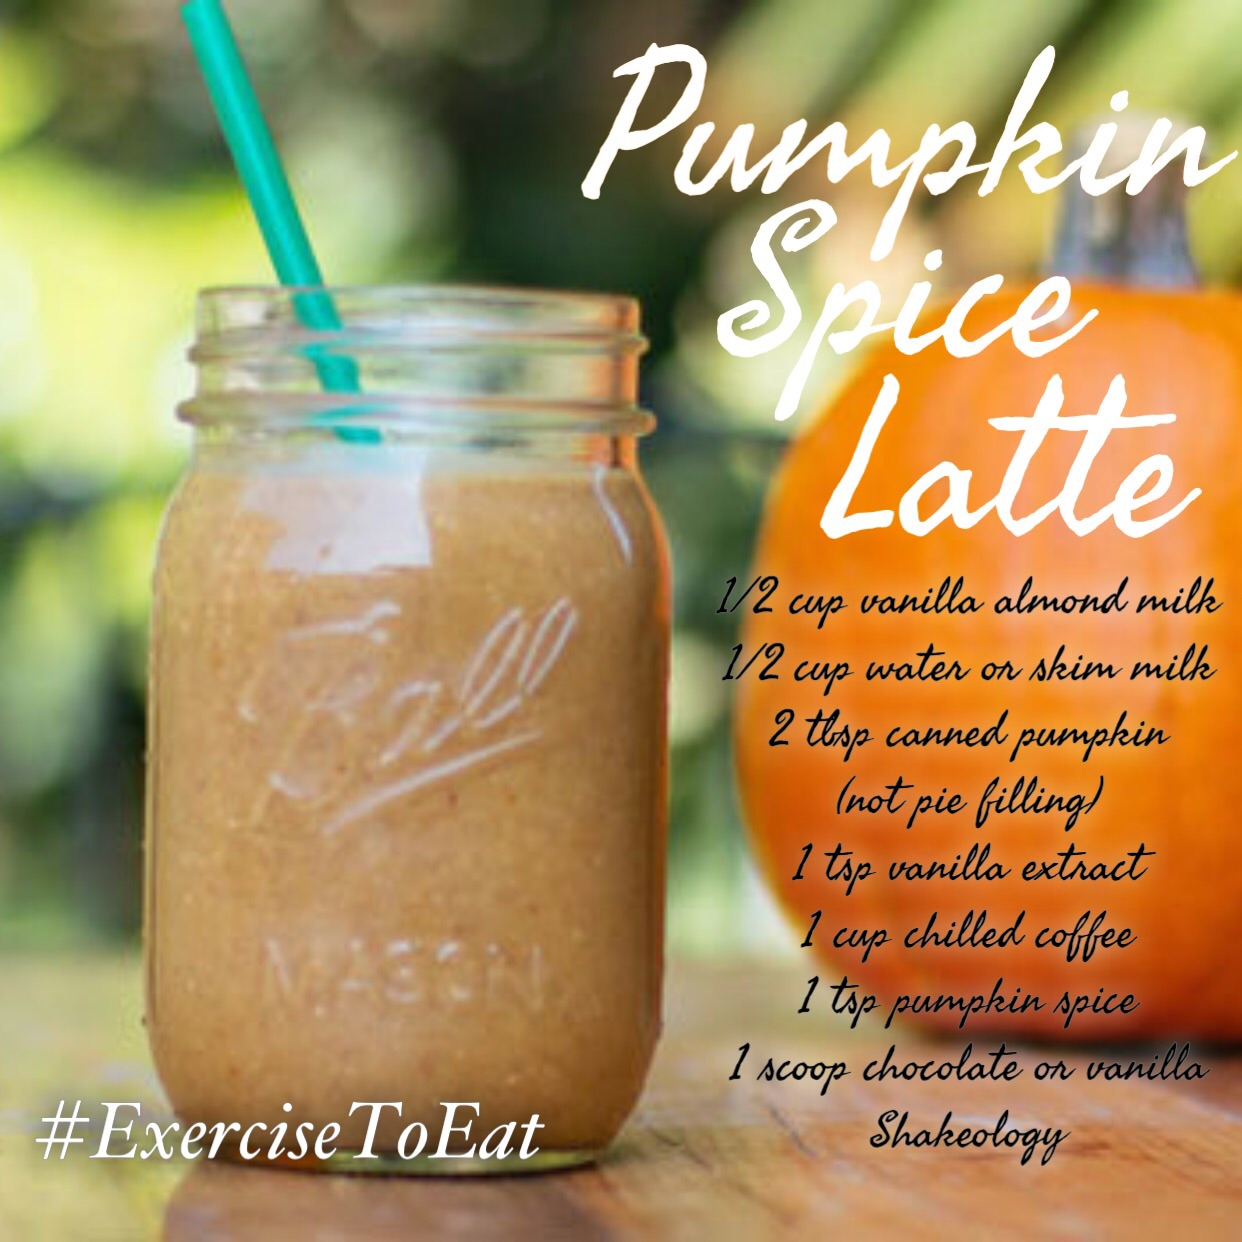 Only 6 grams of sugar in shakeology compared to 89 grams in Starbucks PSL, and shakeology is cheaper per cup!  So which pumpkin spice latte is for you?